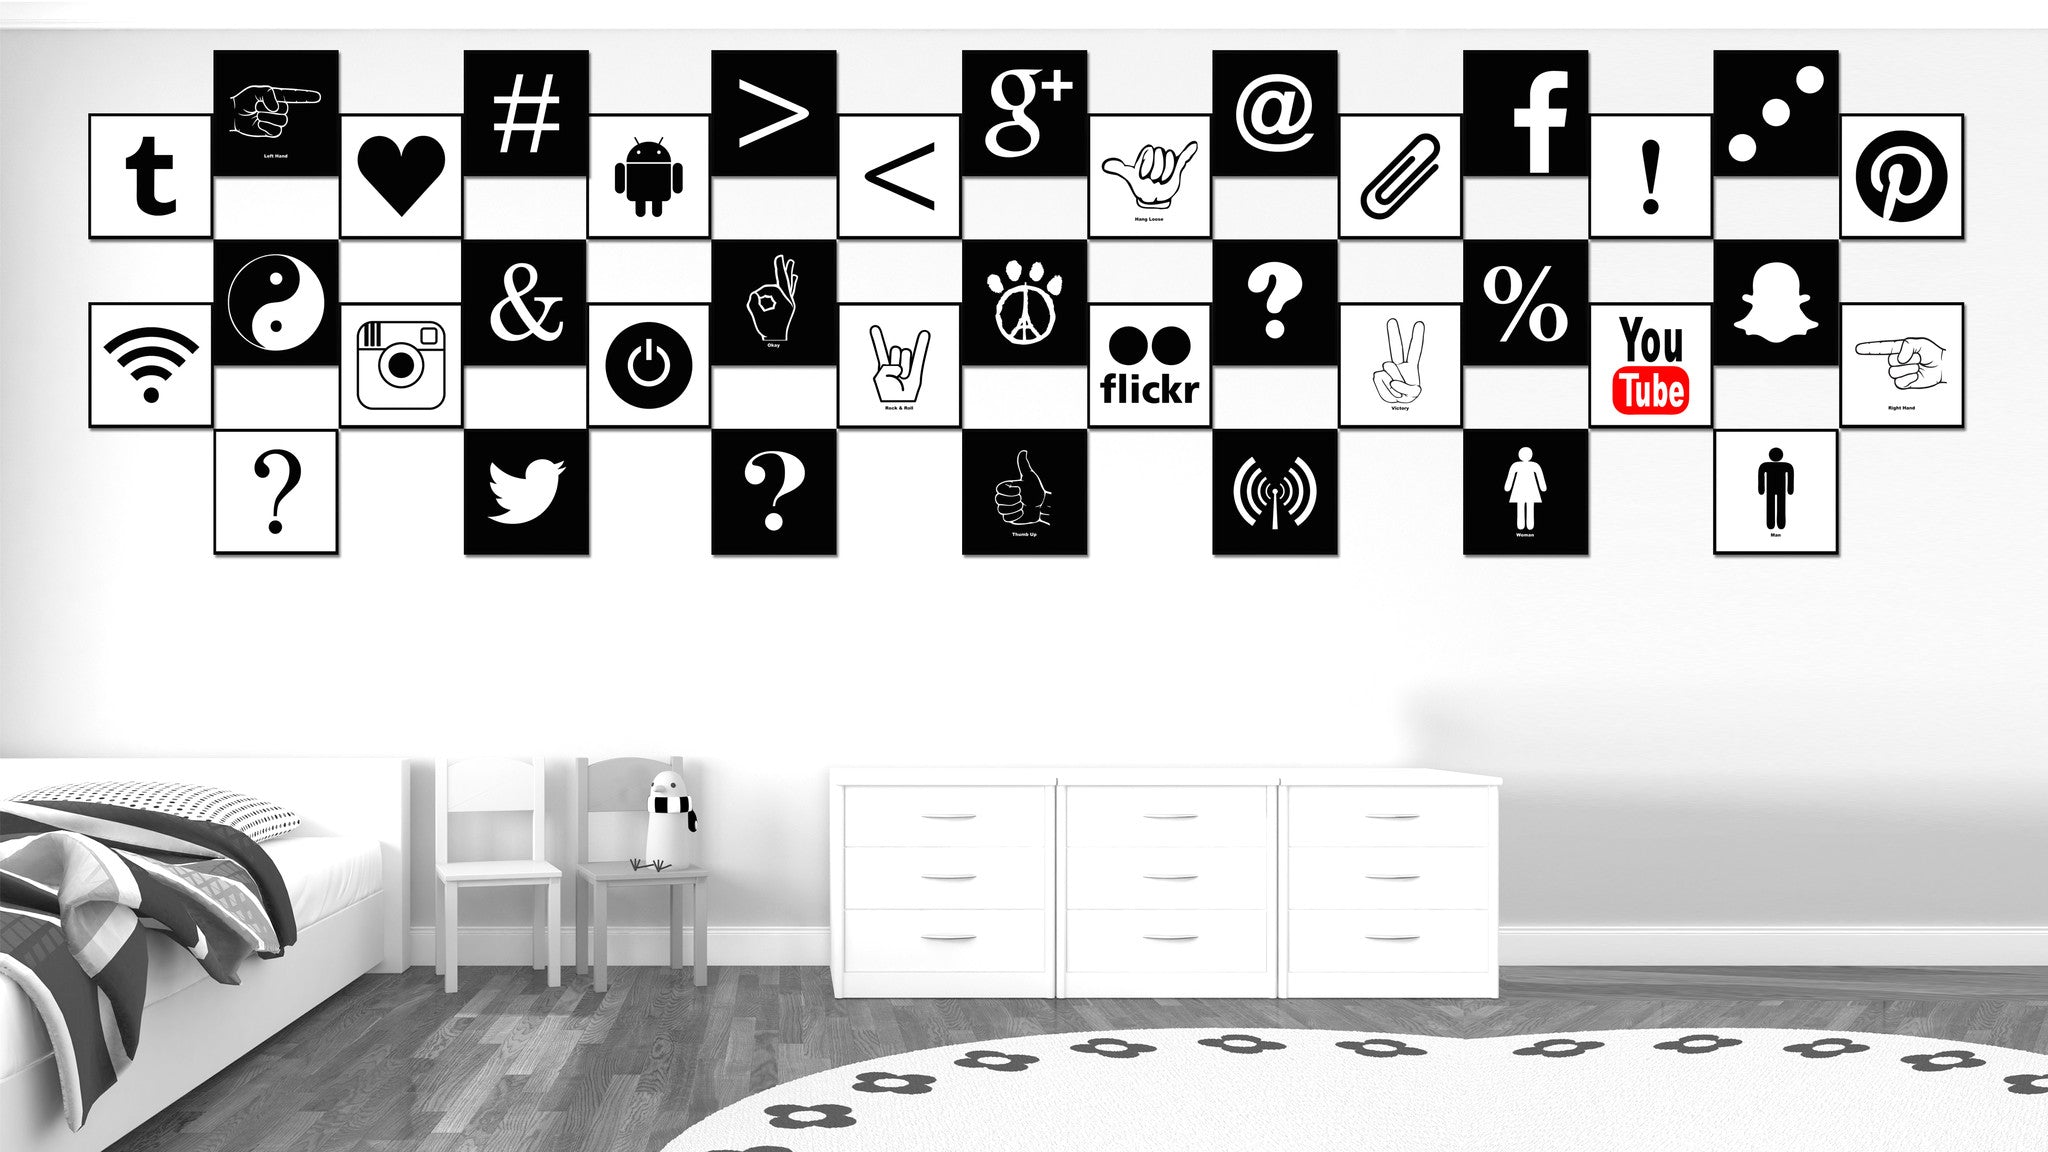 Exclamation Social Media Icon Canvas Print Picture Frame Wall Art Home Decor